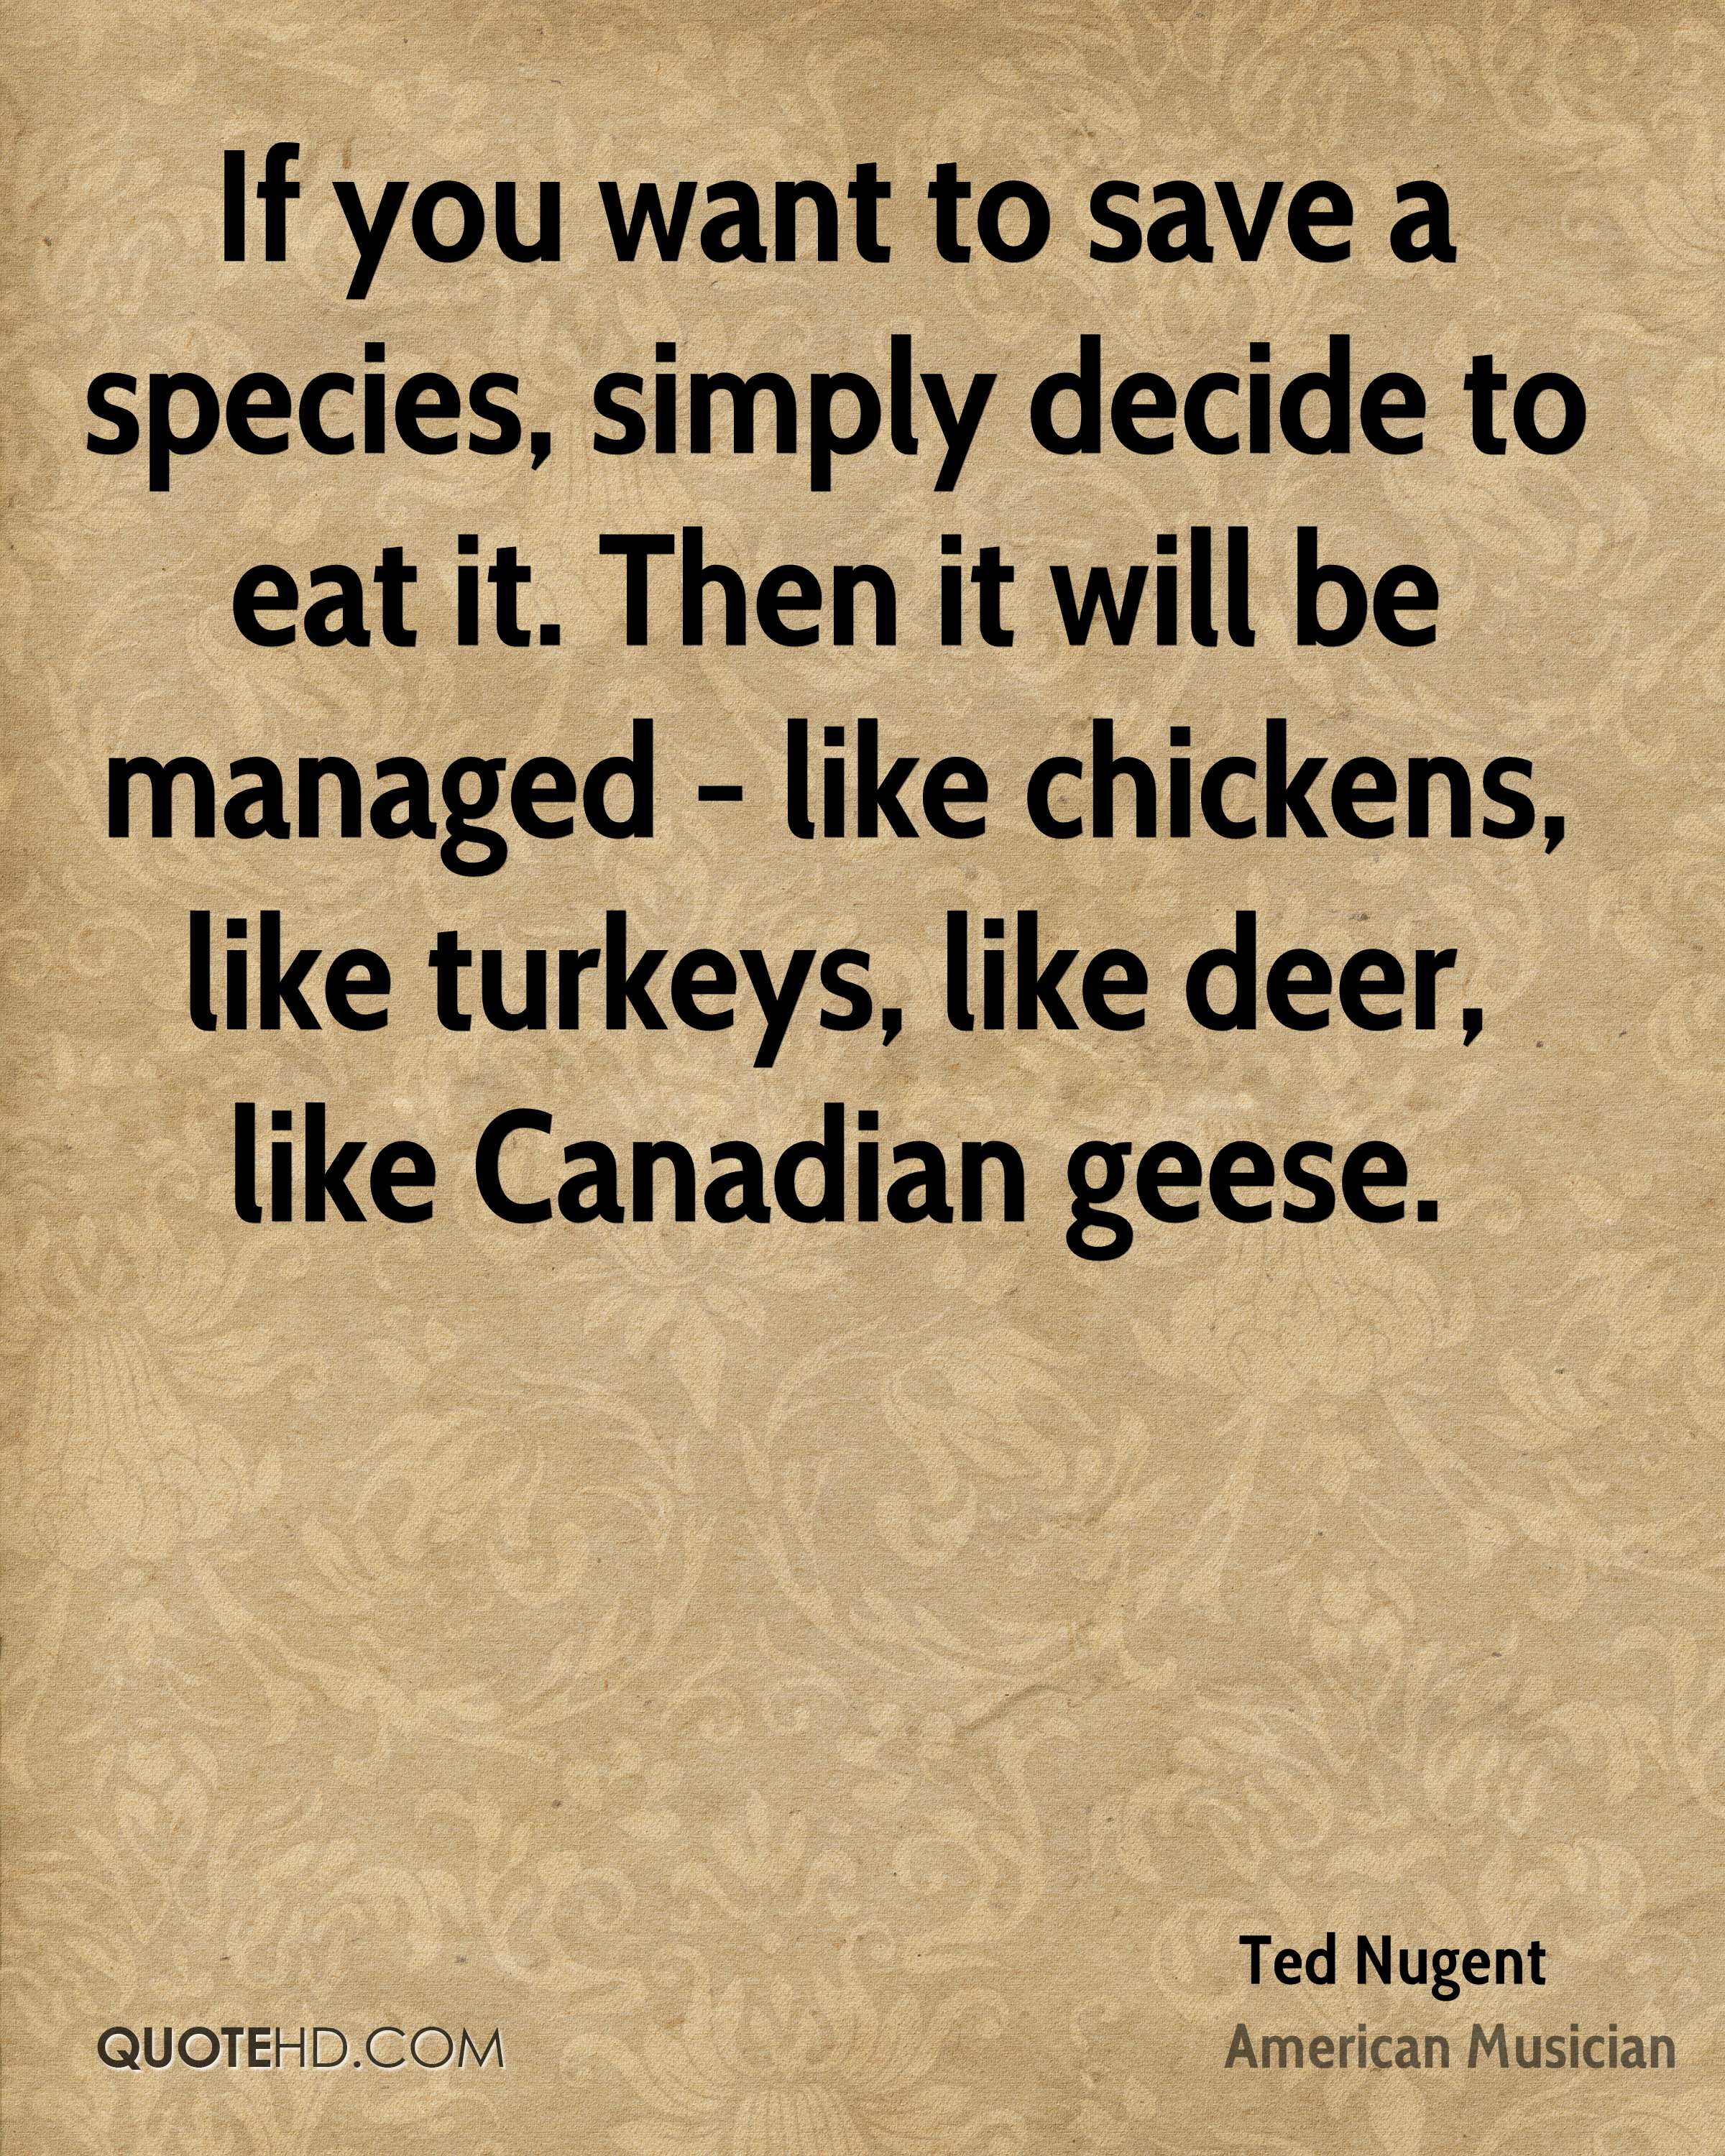 If you want to save a species, simply decide to eat it. Then it will be managed - like chickens, like turkeys, like deer, like Canadian geese.